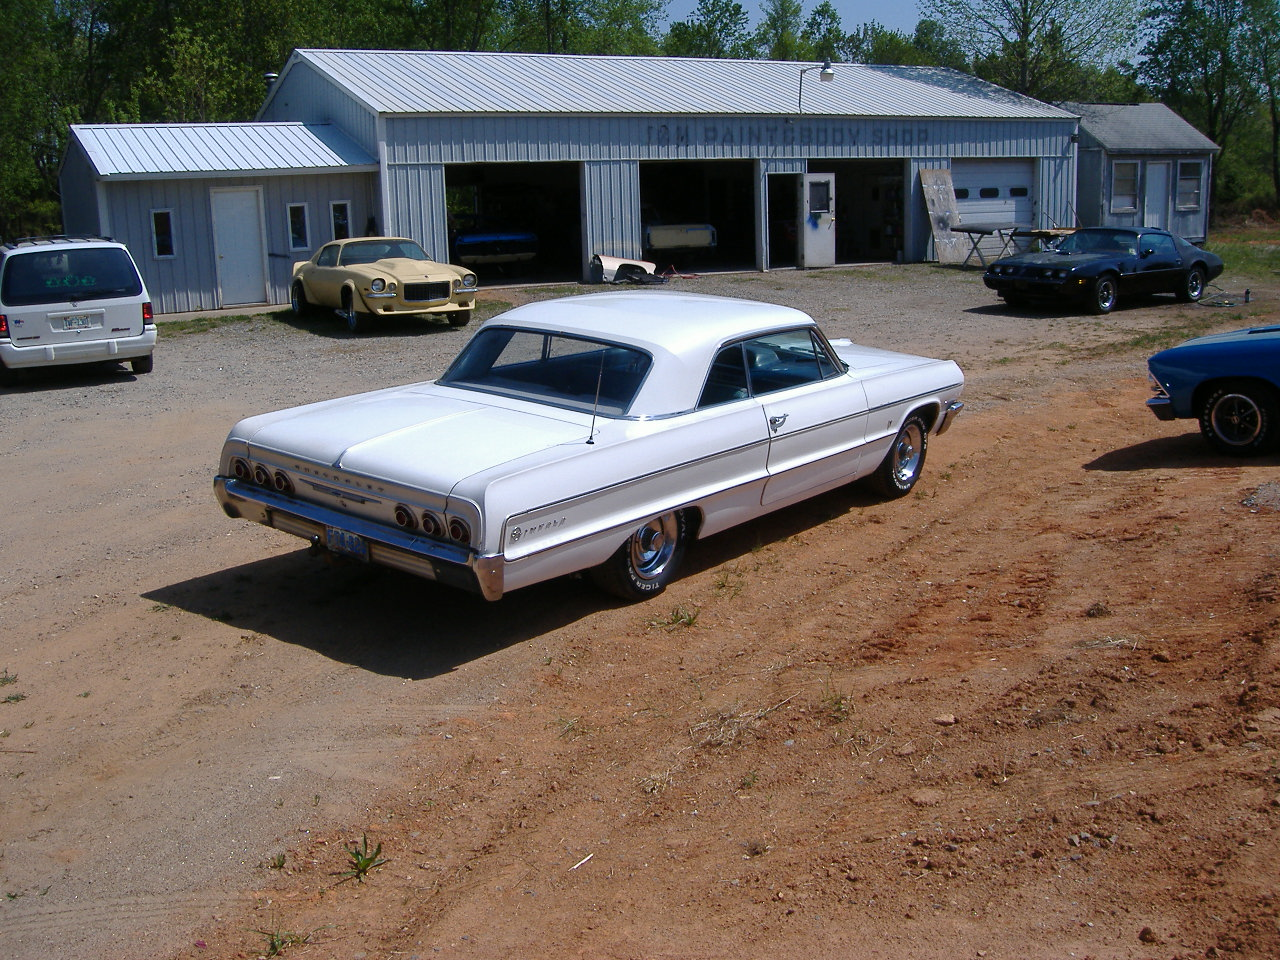 1964 chevy impala convertible for sale in california autos post. Black Bedroom Furniture Sets. Home Design Ideas